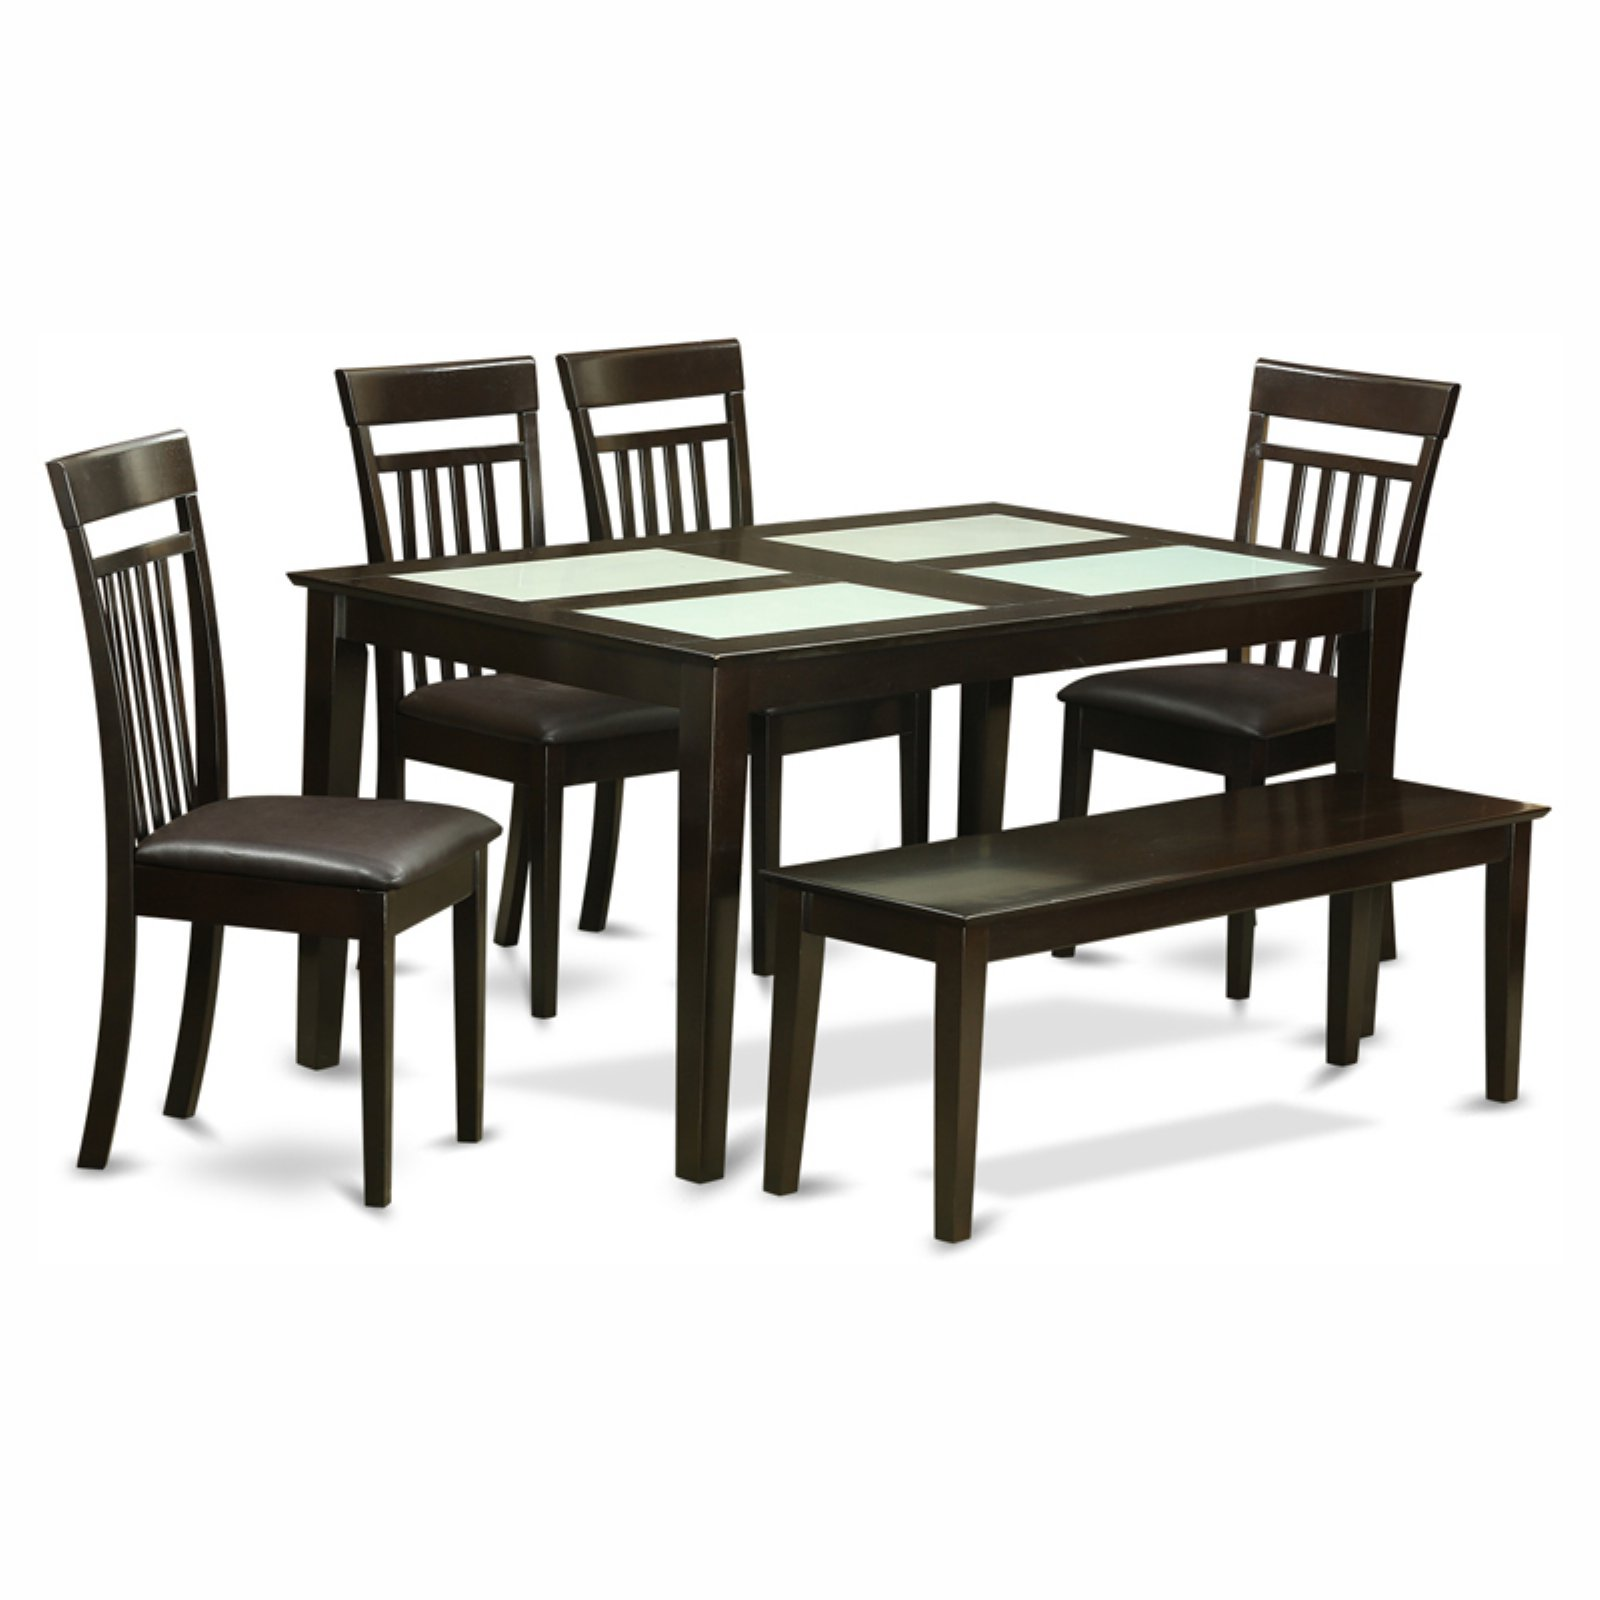 East West Furniture Capri 6 Piece Glass Top Rectangular Dining Table Set with Microfiber Seat Chairs